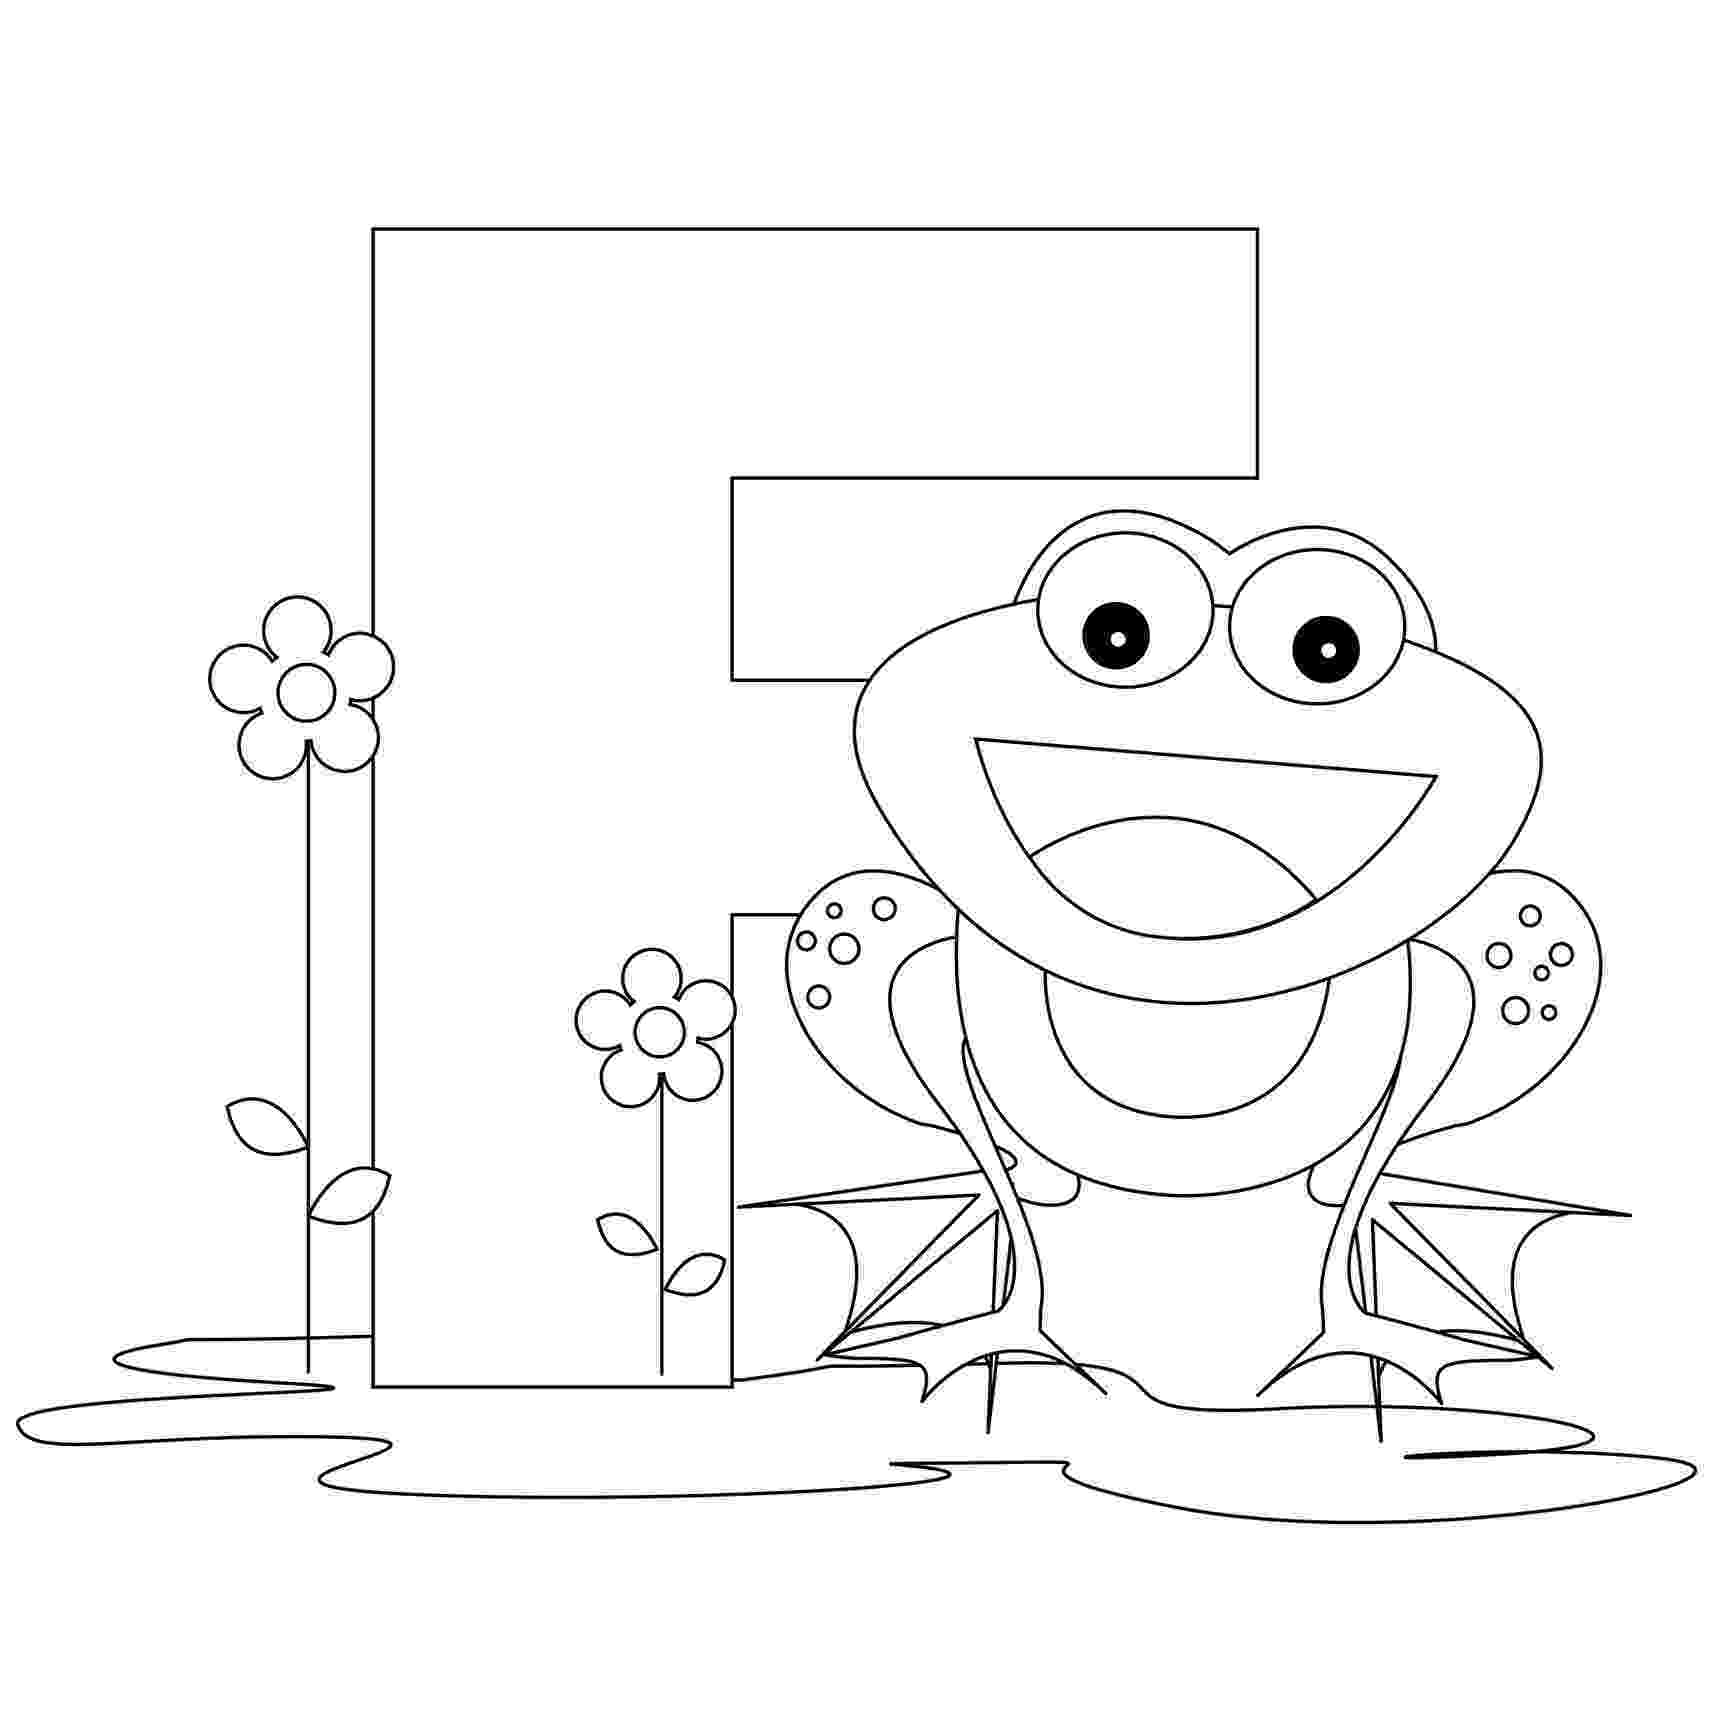 alphabet coloring worksheets free printable alphabet coloring pages for kids best worksheets alphabet coloring 1 1